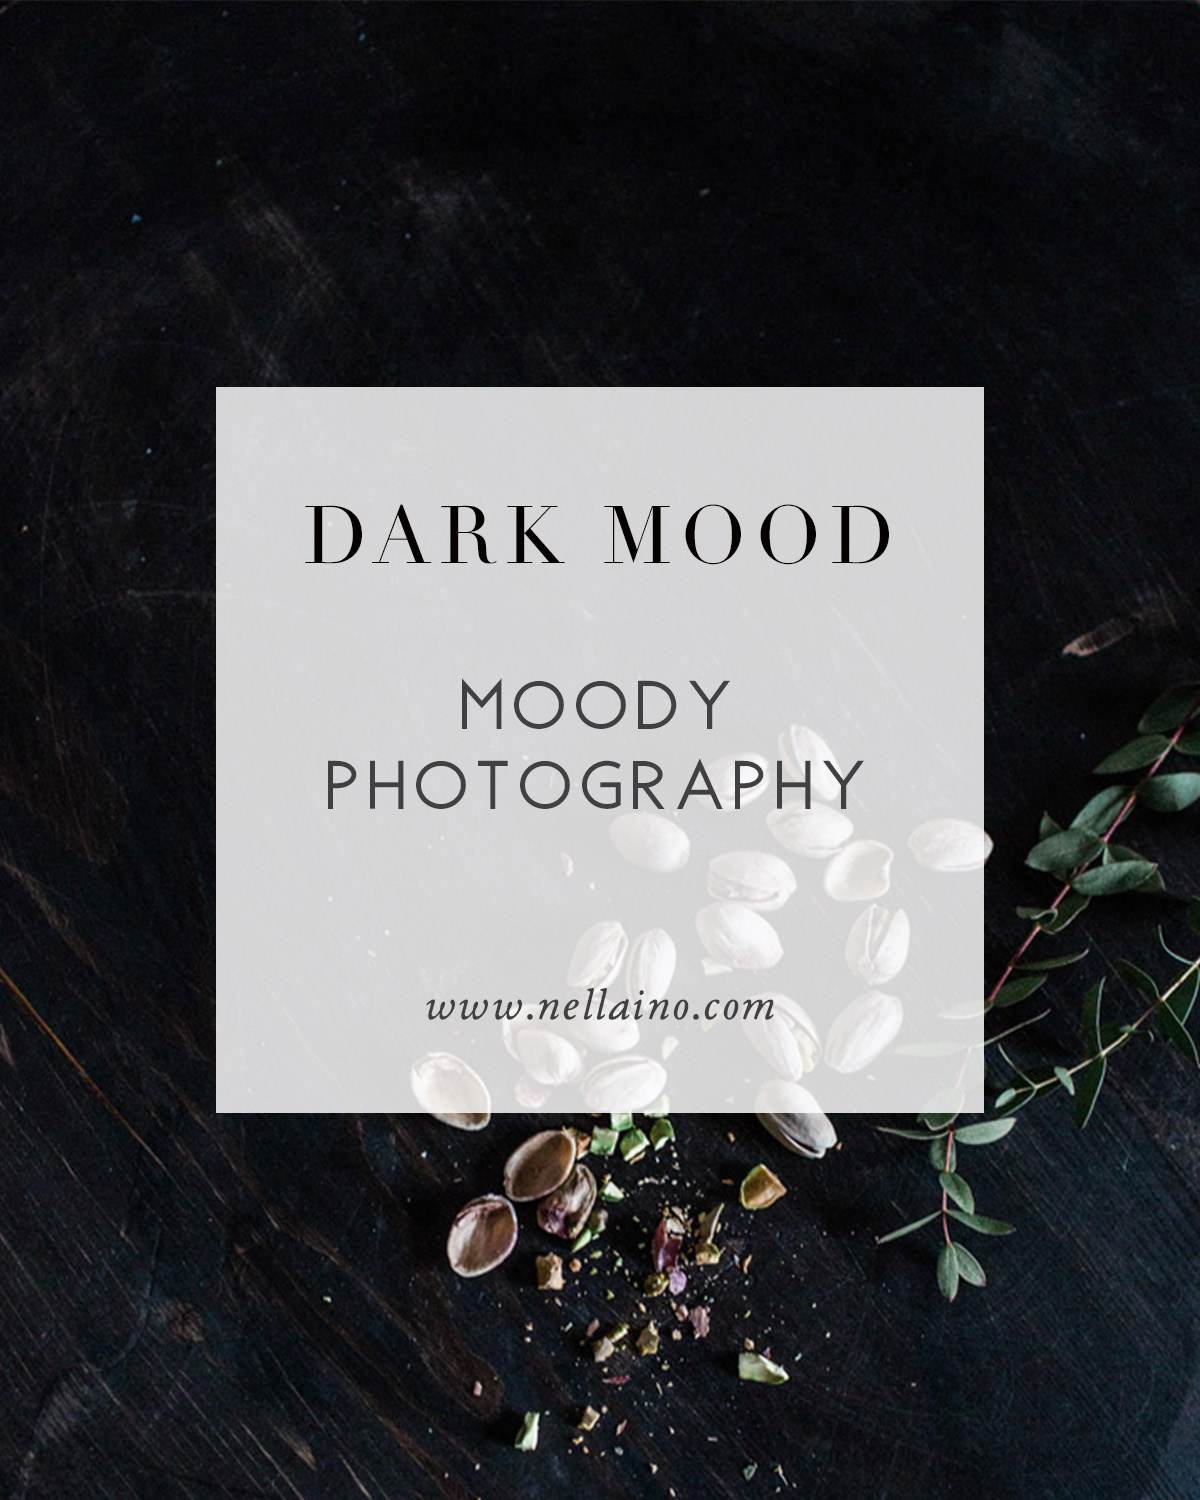 Moody-photography.jpg